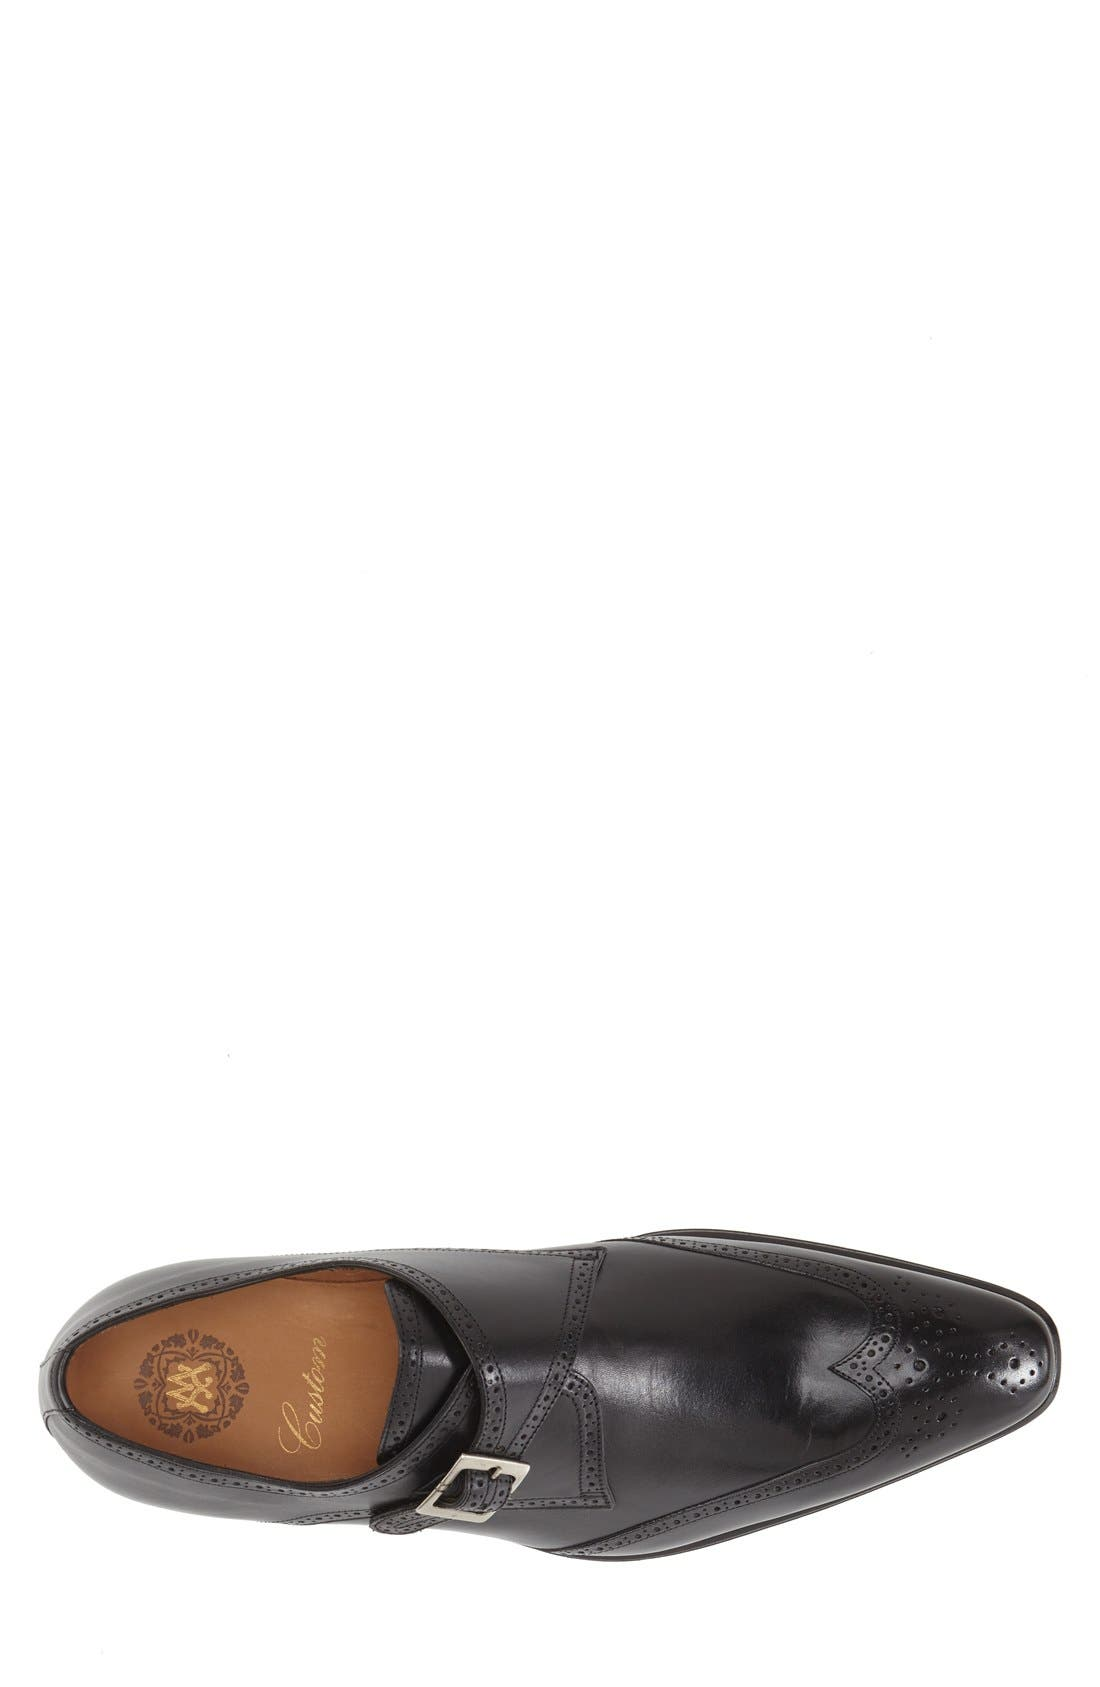 'Vitoria' Monk Strap Oxford,                             Alternate thumbnail 3, color,                             BLACK LEATHER